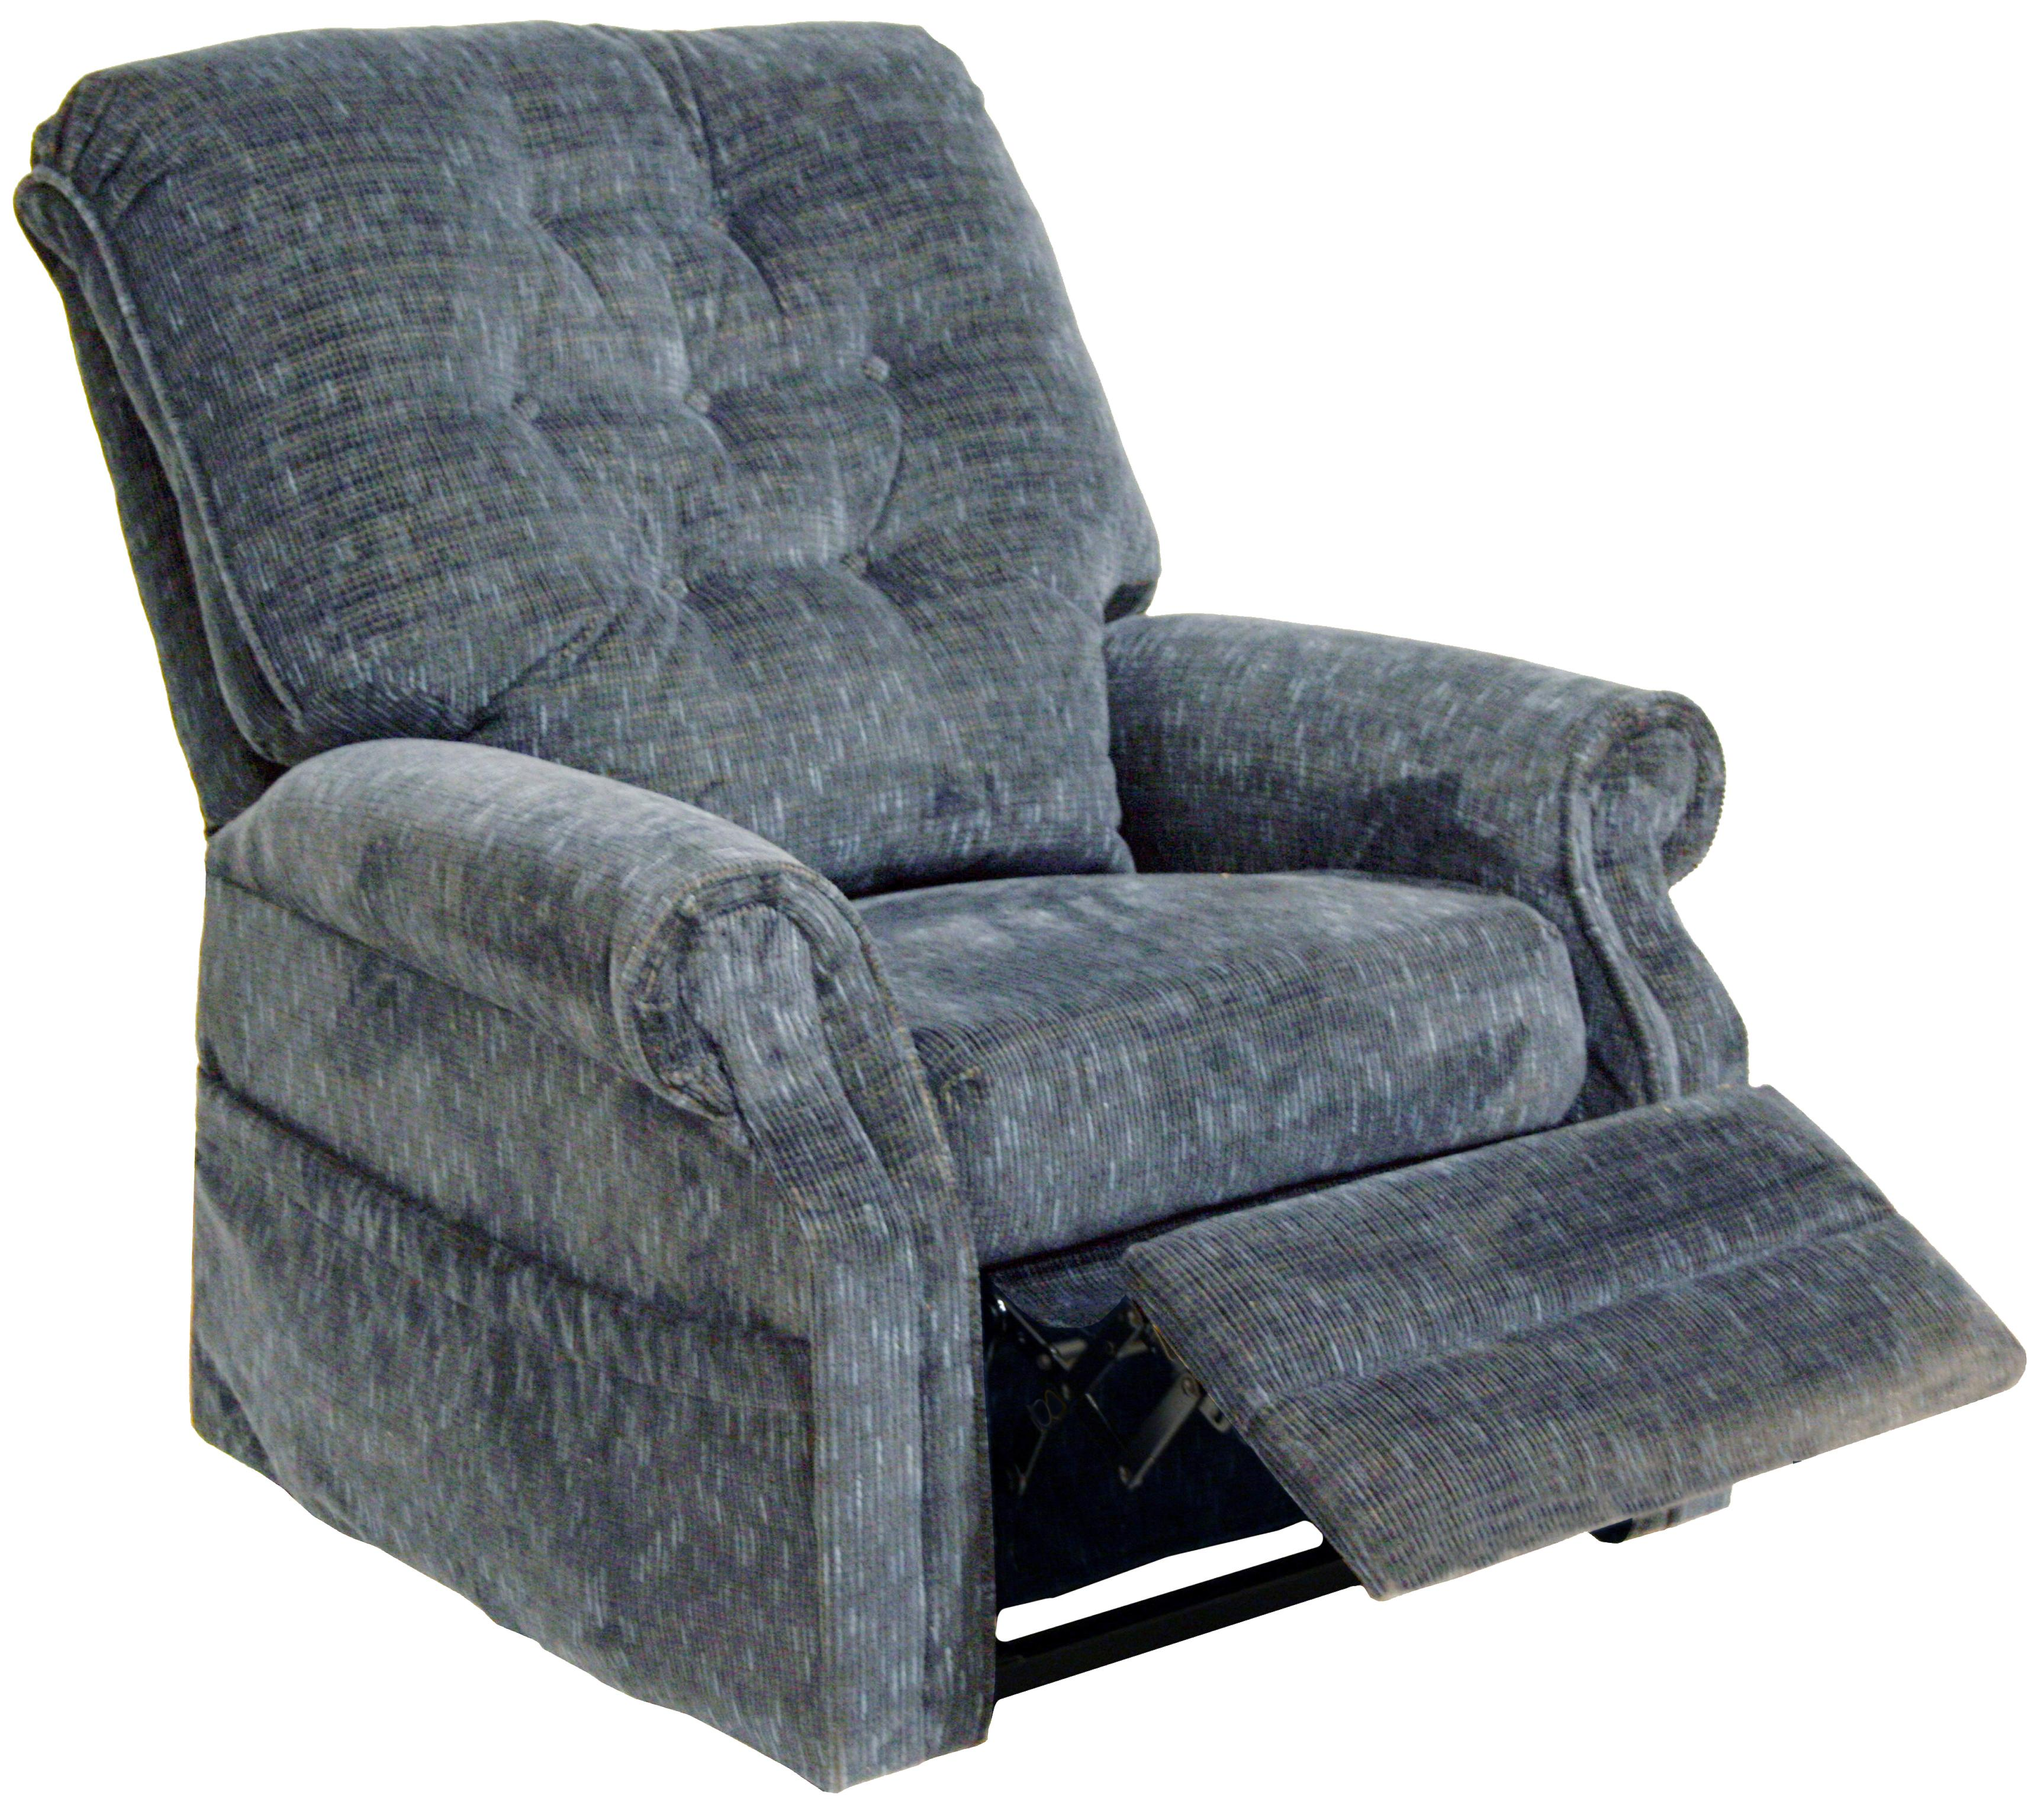 lift chairs walmart armless rocking chair uk catnapper patriot 4824 quotpow 39r quot full lay out